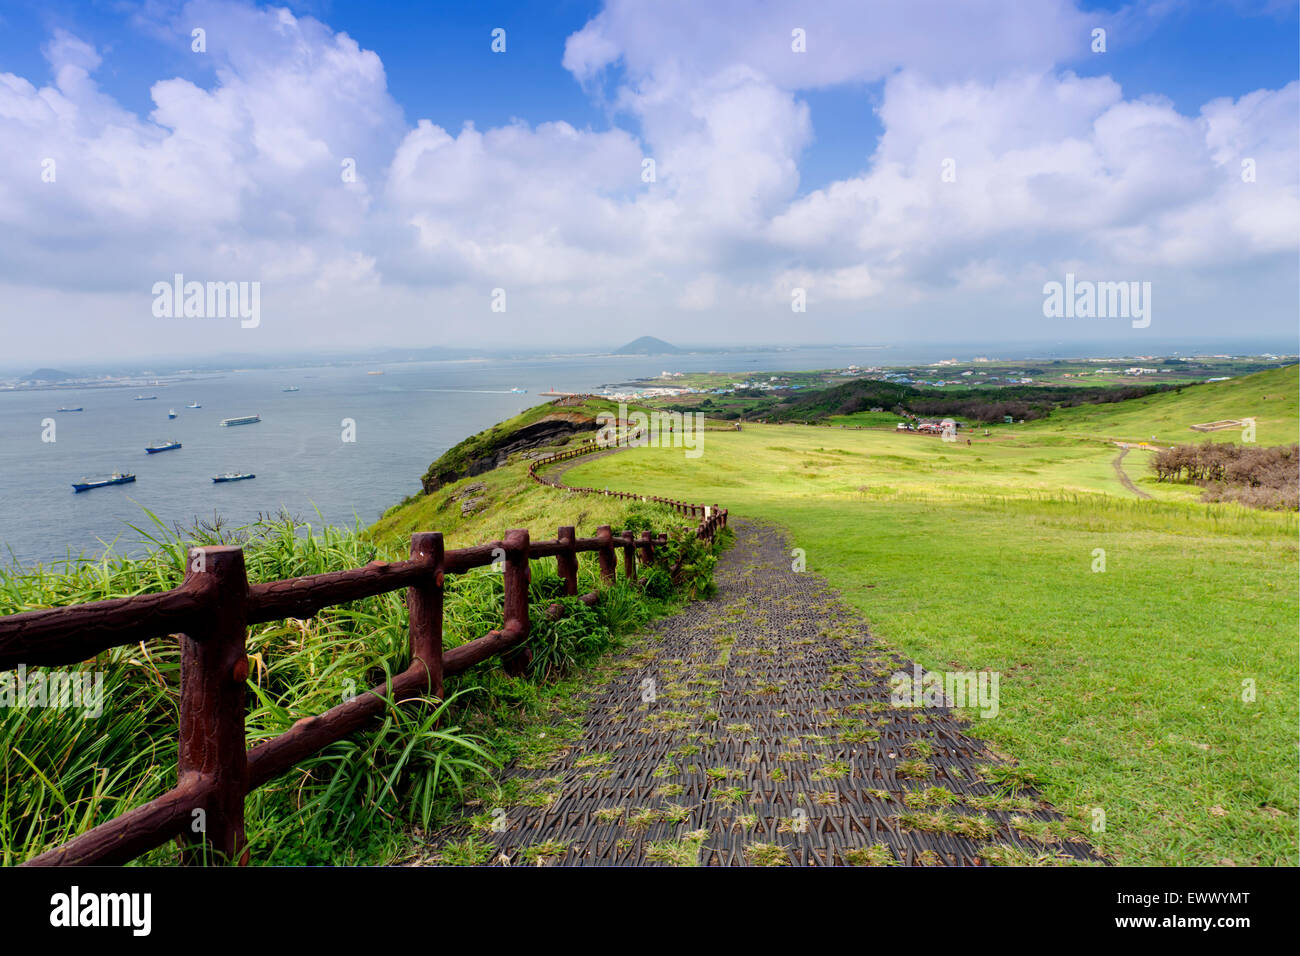 Landscape of Jeju Island, South Korea Stock Photo